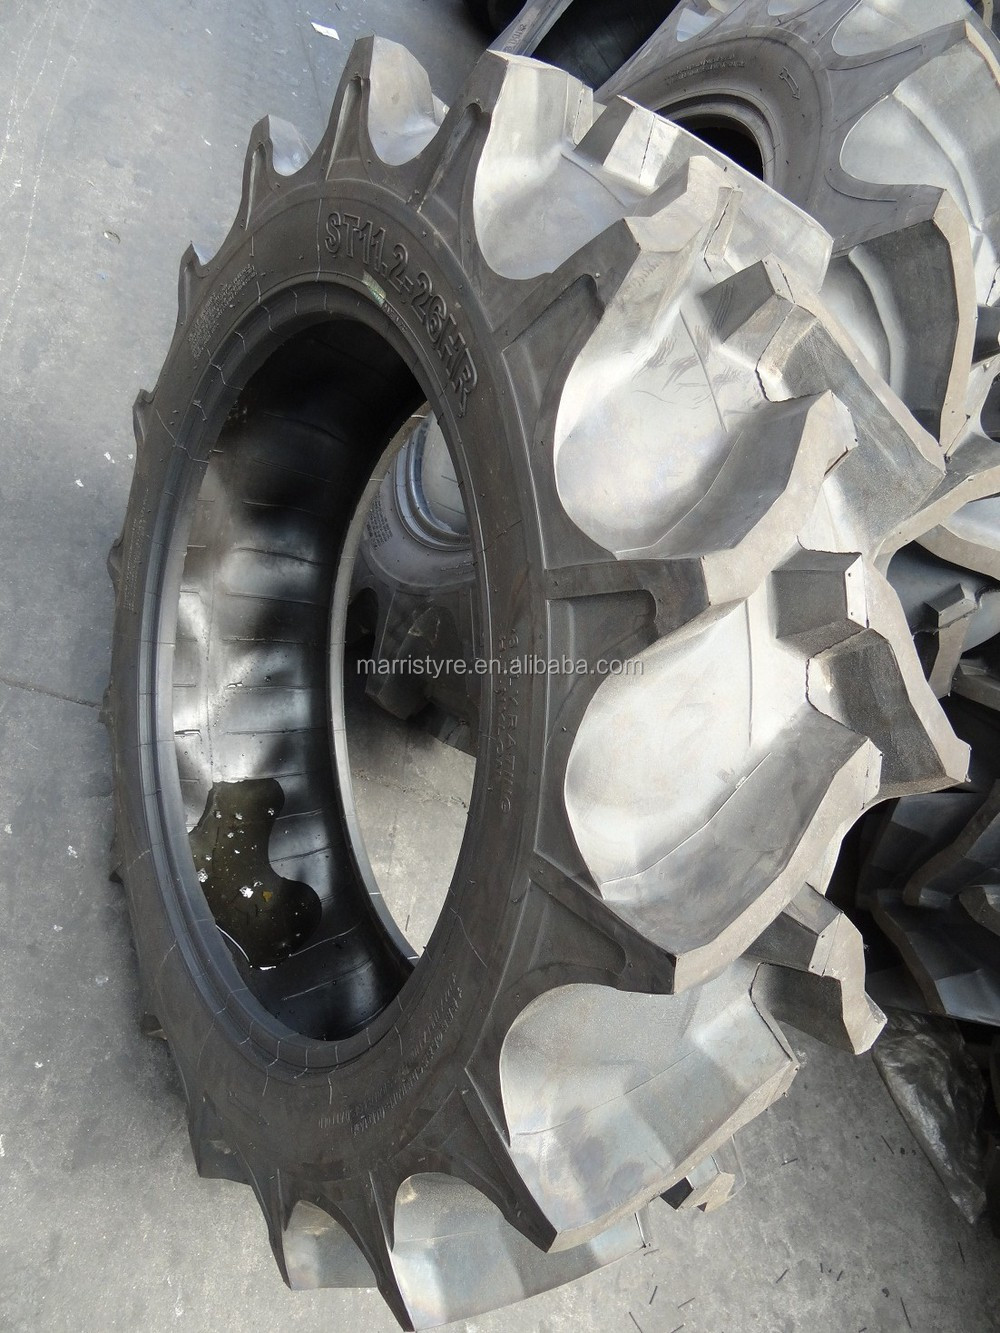 Japanese Tractor Tires : Agricultural tire japan tractor for russia